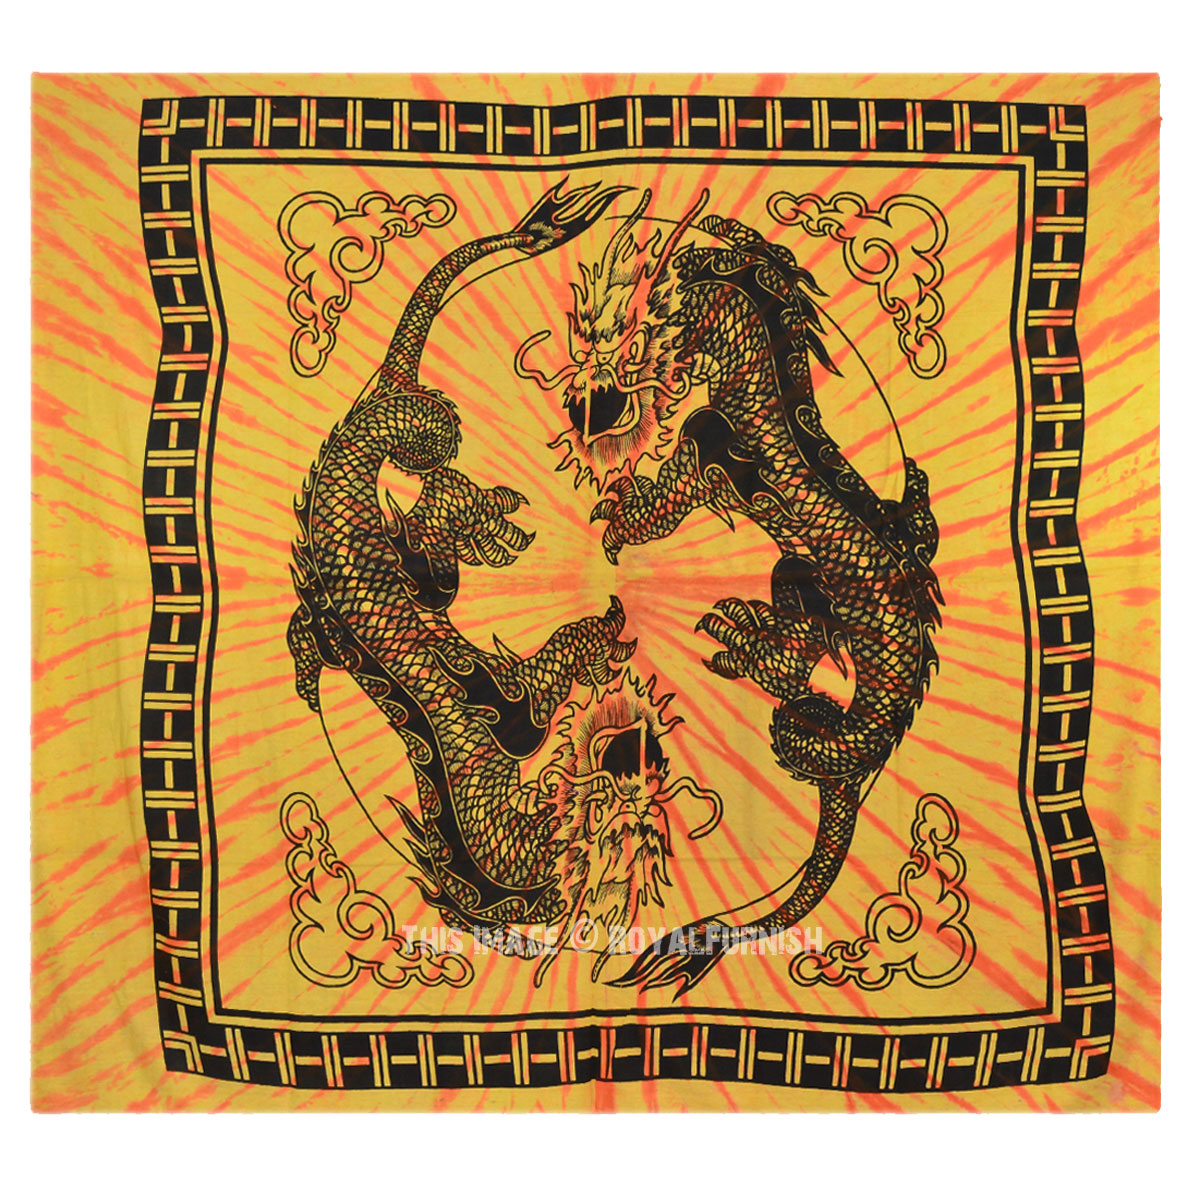 Yellow Yin Yang Chinese Dragon Fly Hippie Tapestry Wall Hanging Bedspread Decor Art